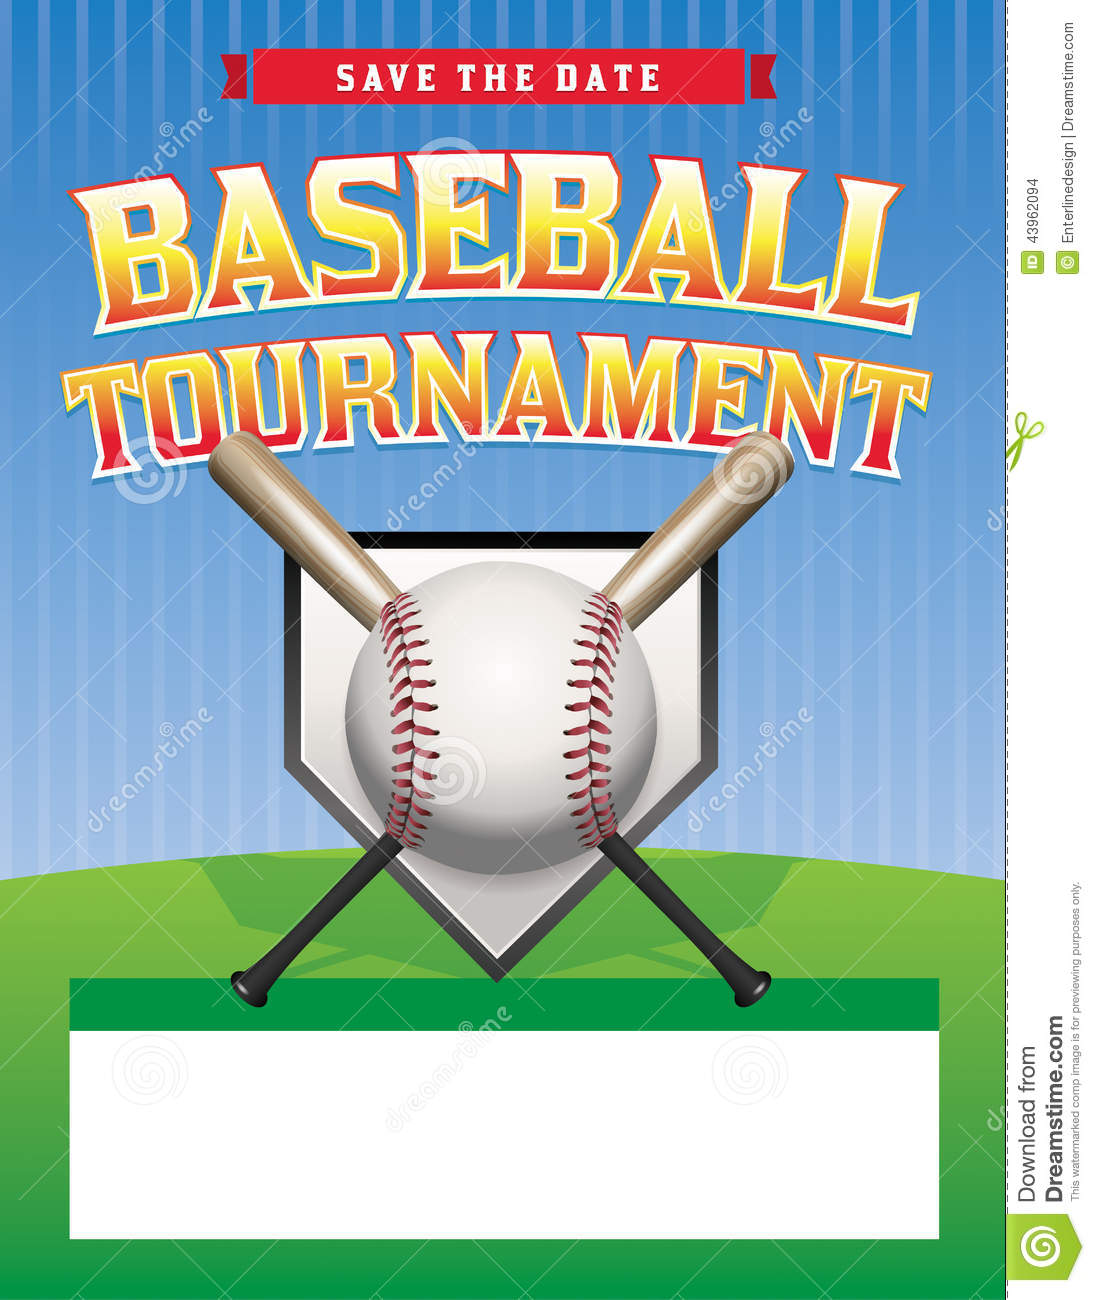 baseball tournament illustration stock vector illustration of